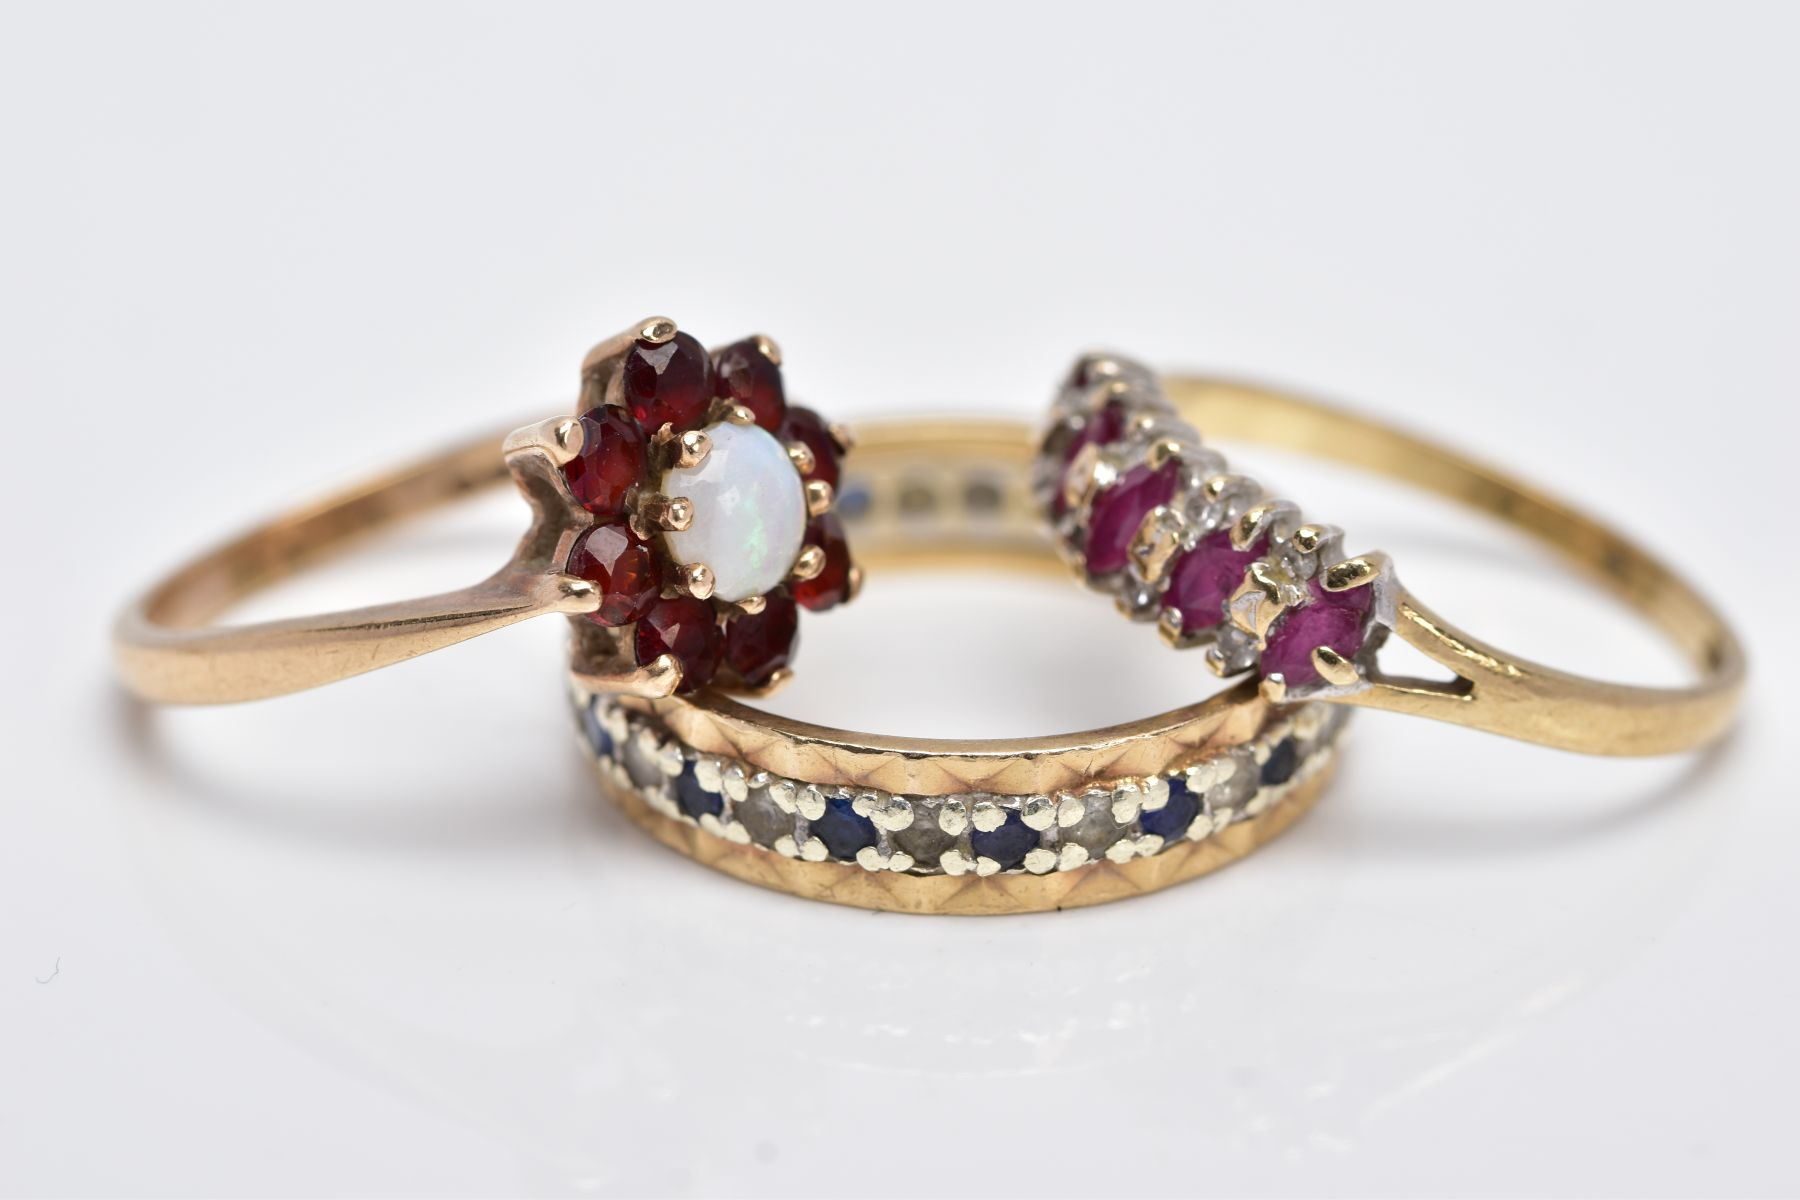 THREE 9CT GOLD GEM SET RINGS, to include a full eternity ring set with colourless spinel and blue - Image 2 of 4